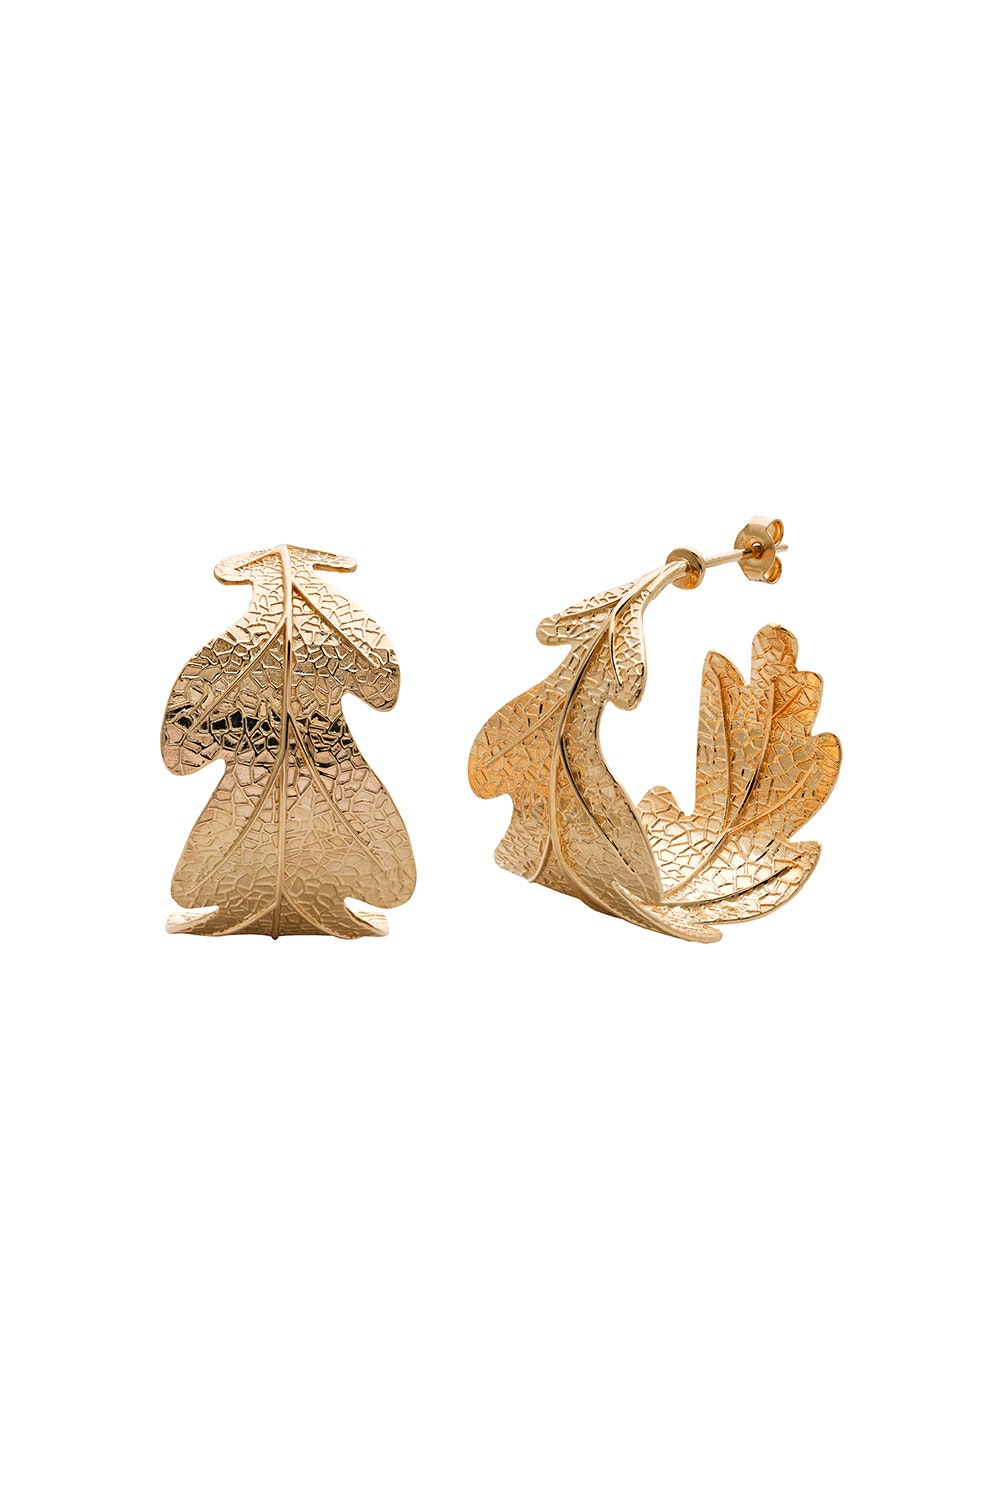 oak-leaf-earrings-gold-plated-kw342hgp-gold-plated-front-0350103001551228543_1551228510